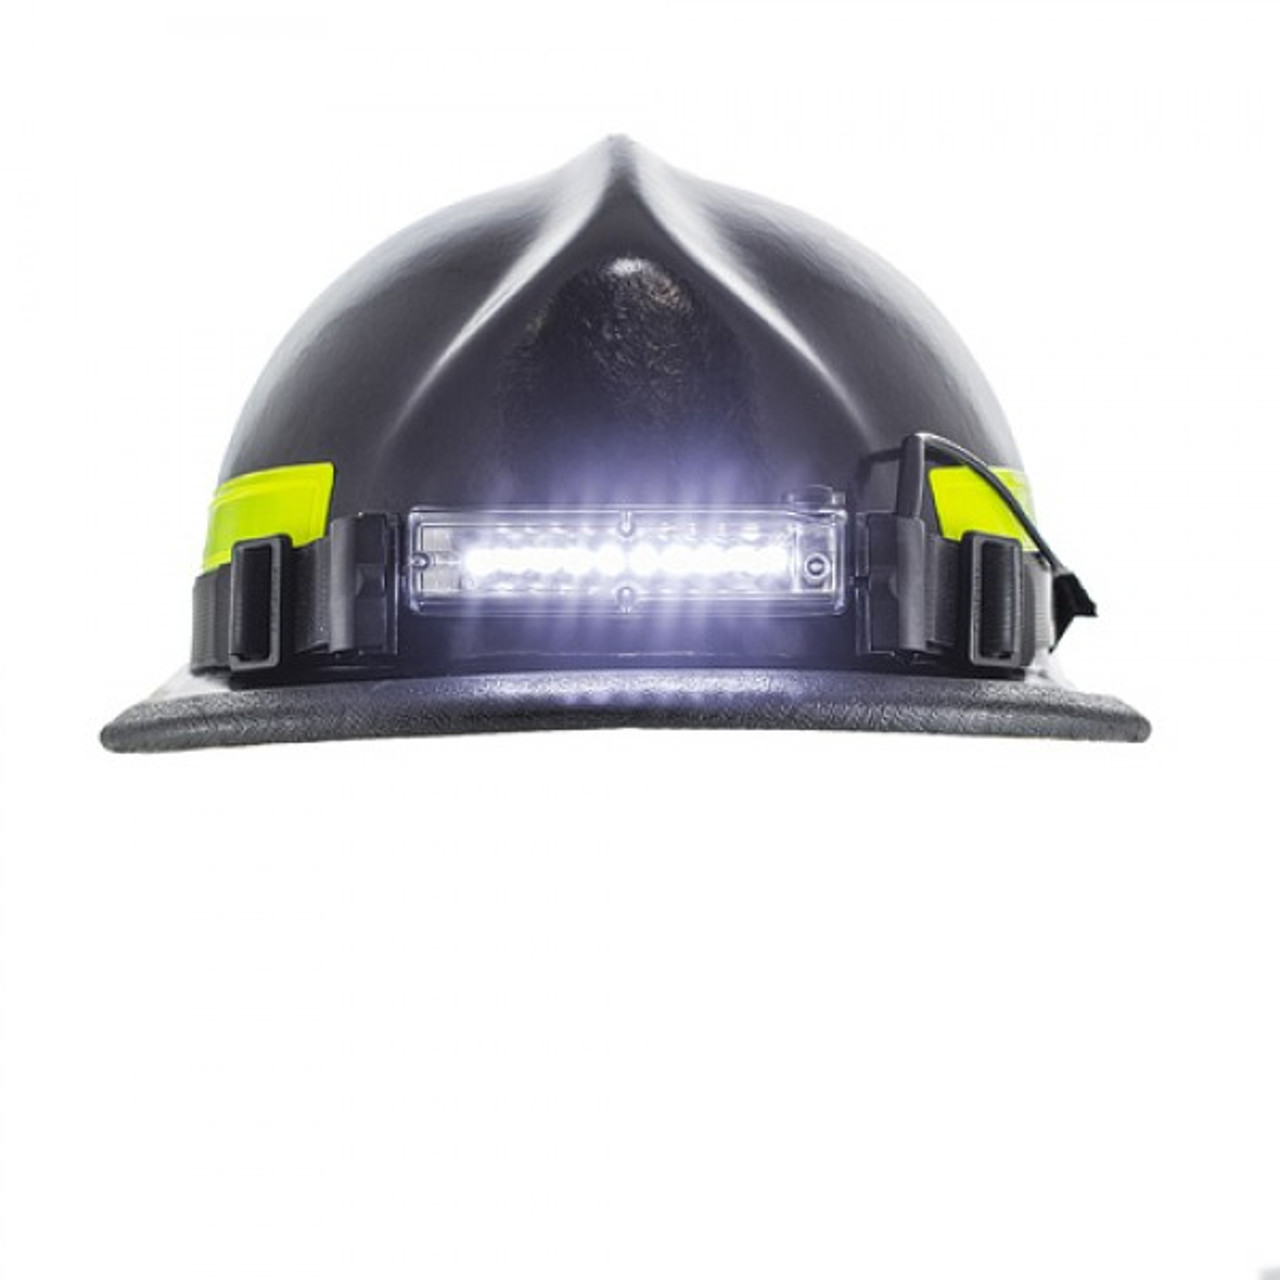 Ultra-slim 10 LED Firefighter Helmet Light with Rear Safety LED